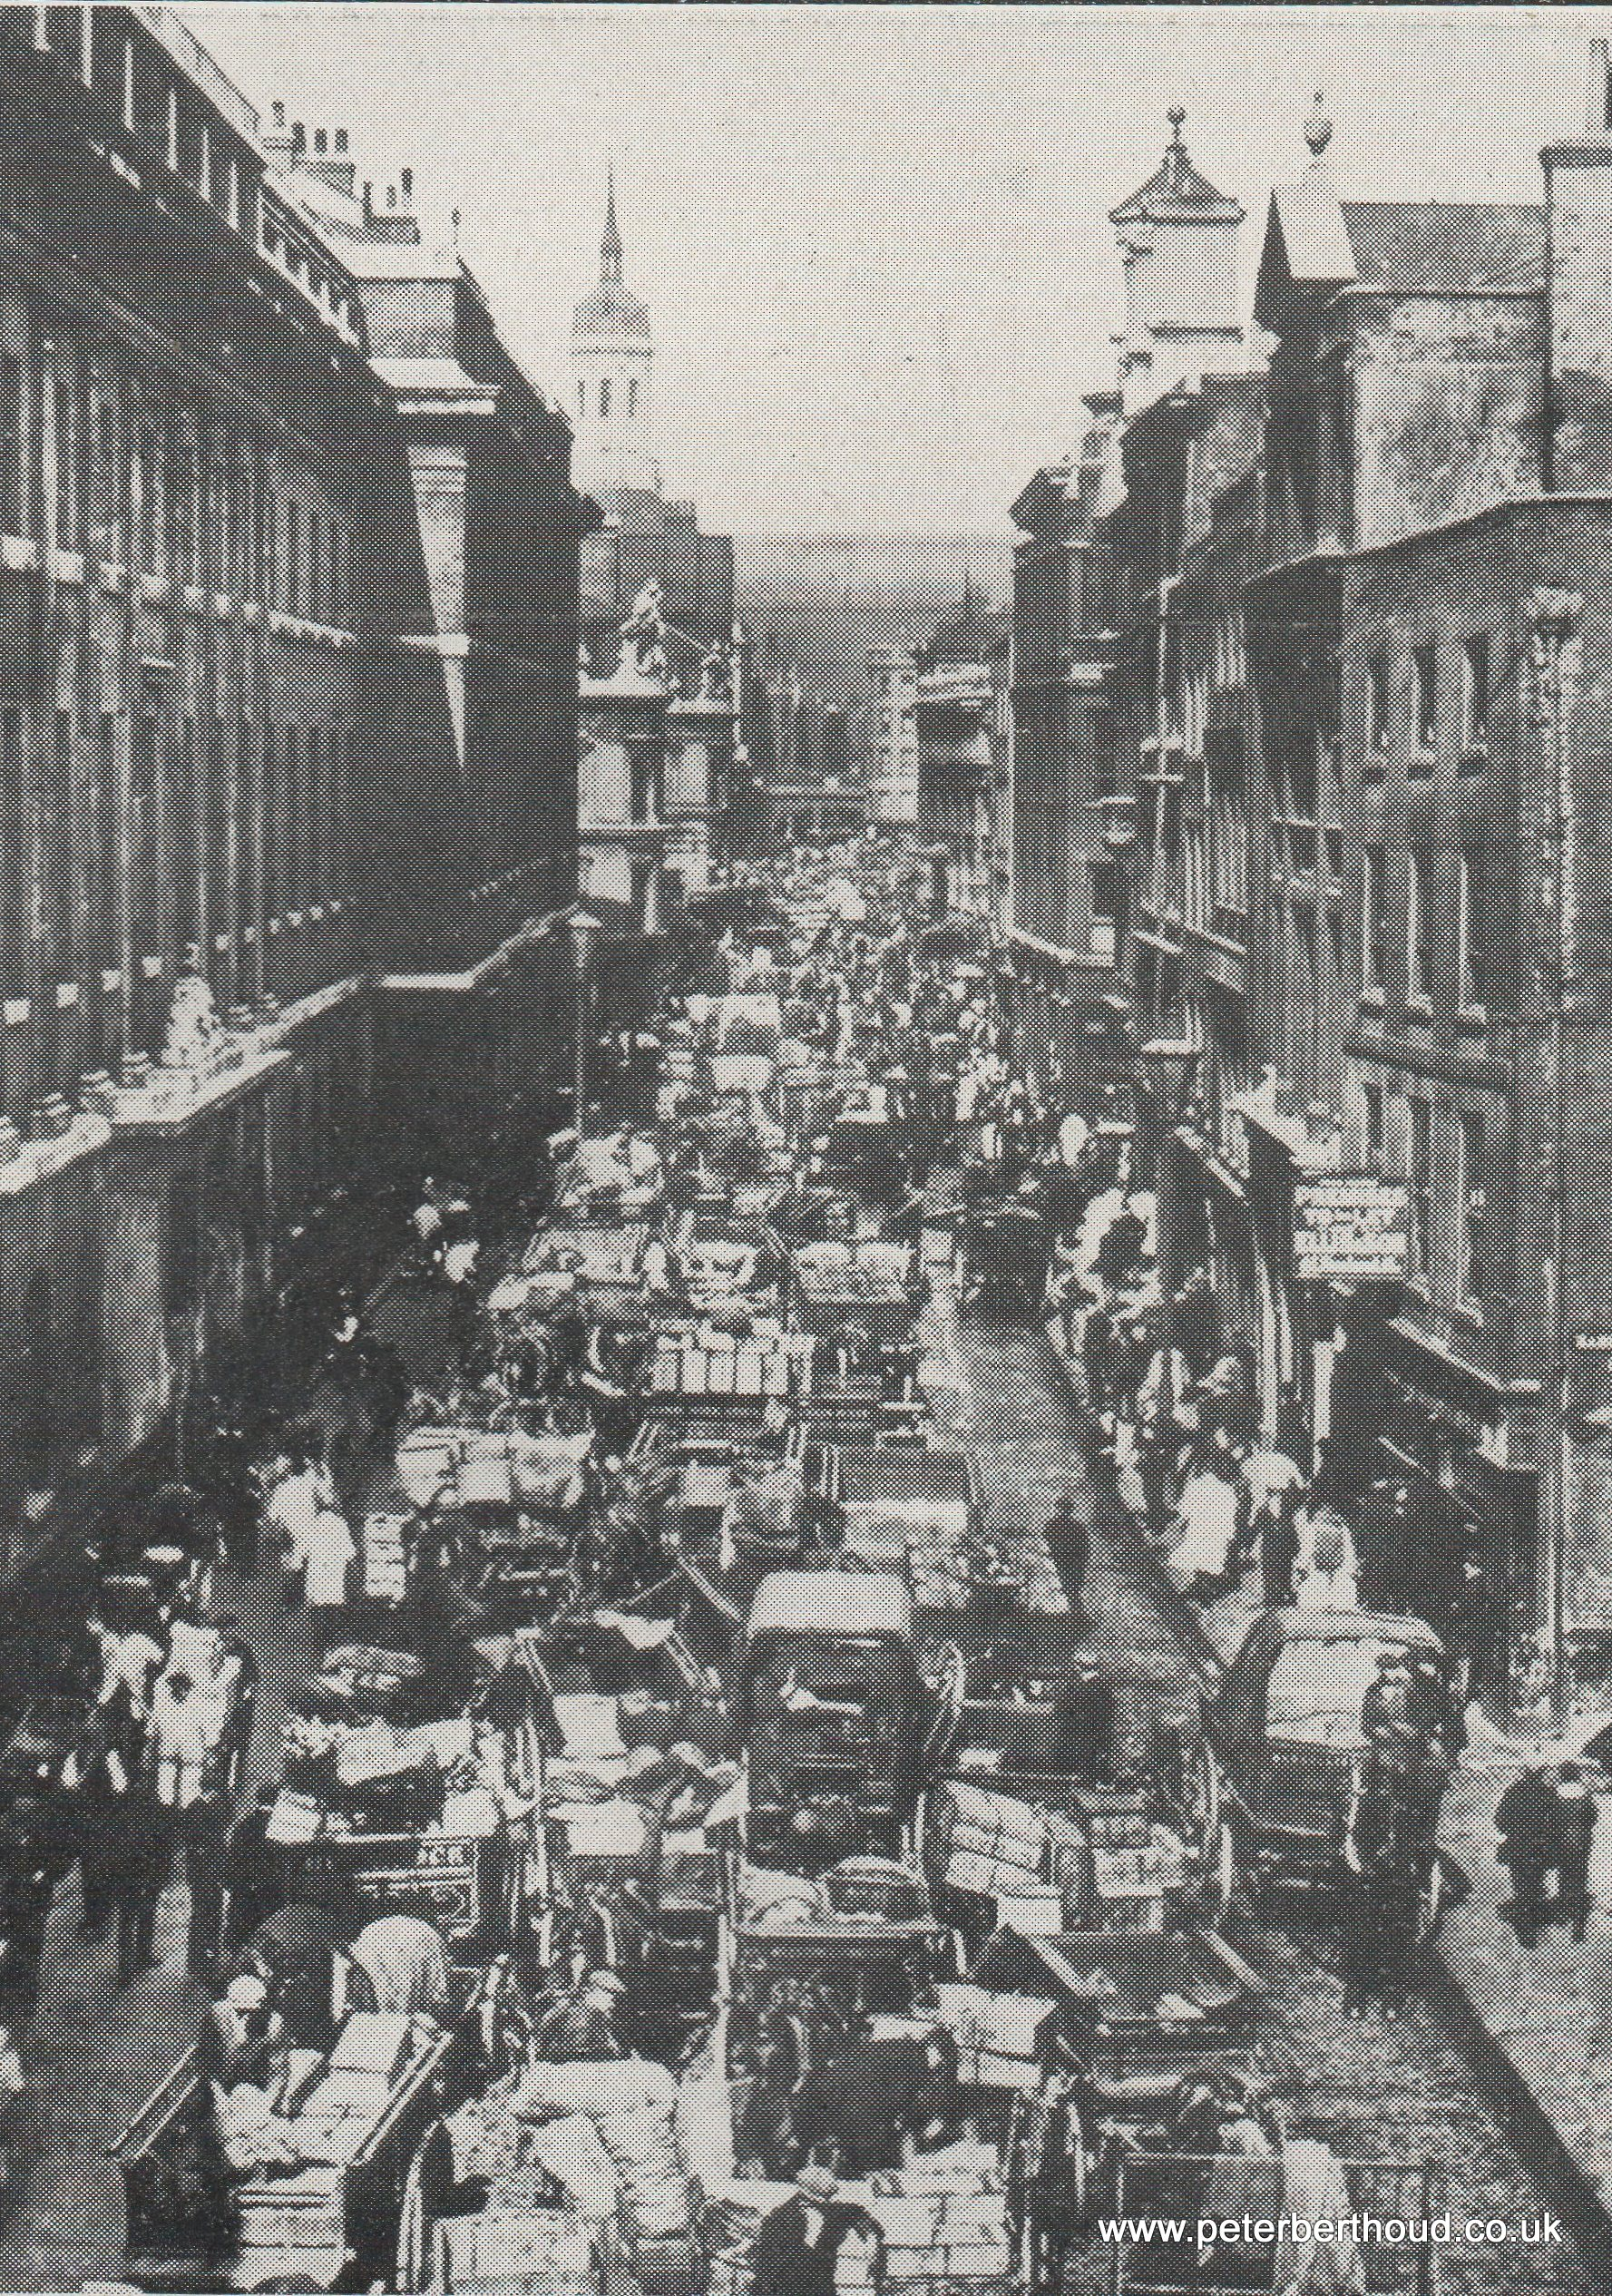 Billingsgate Fish Market: Delivery Vehicles in Lower Thames Street (1930)